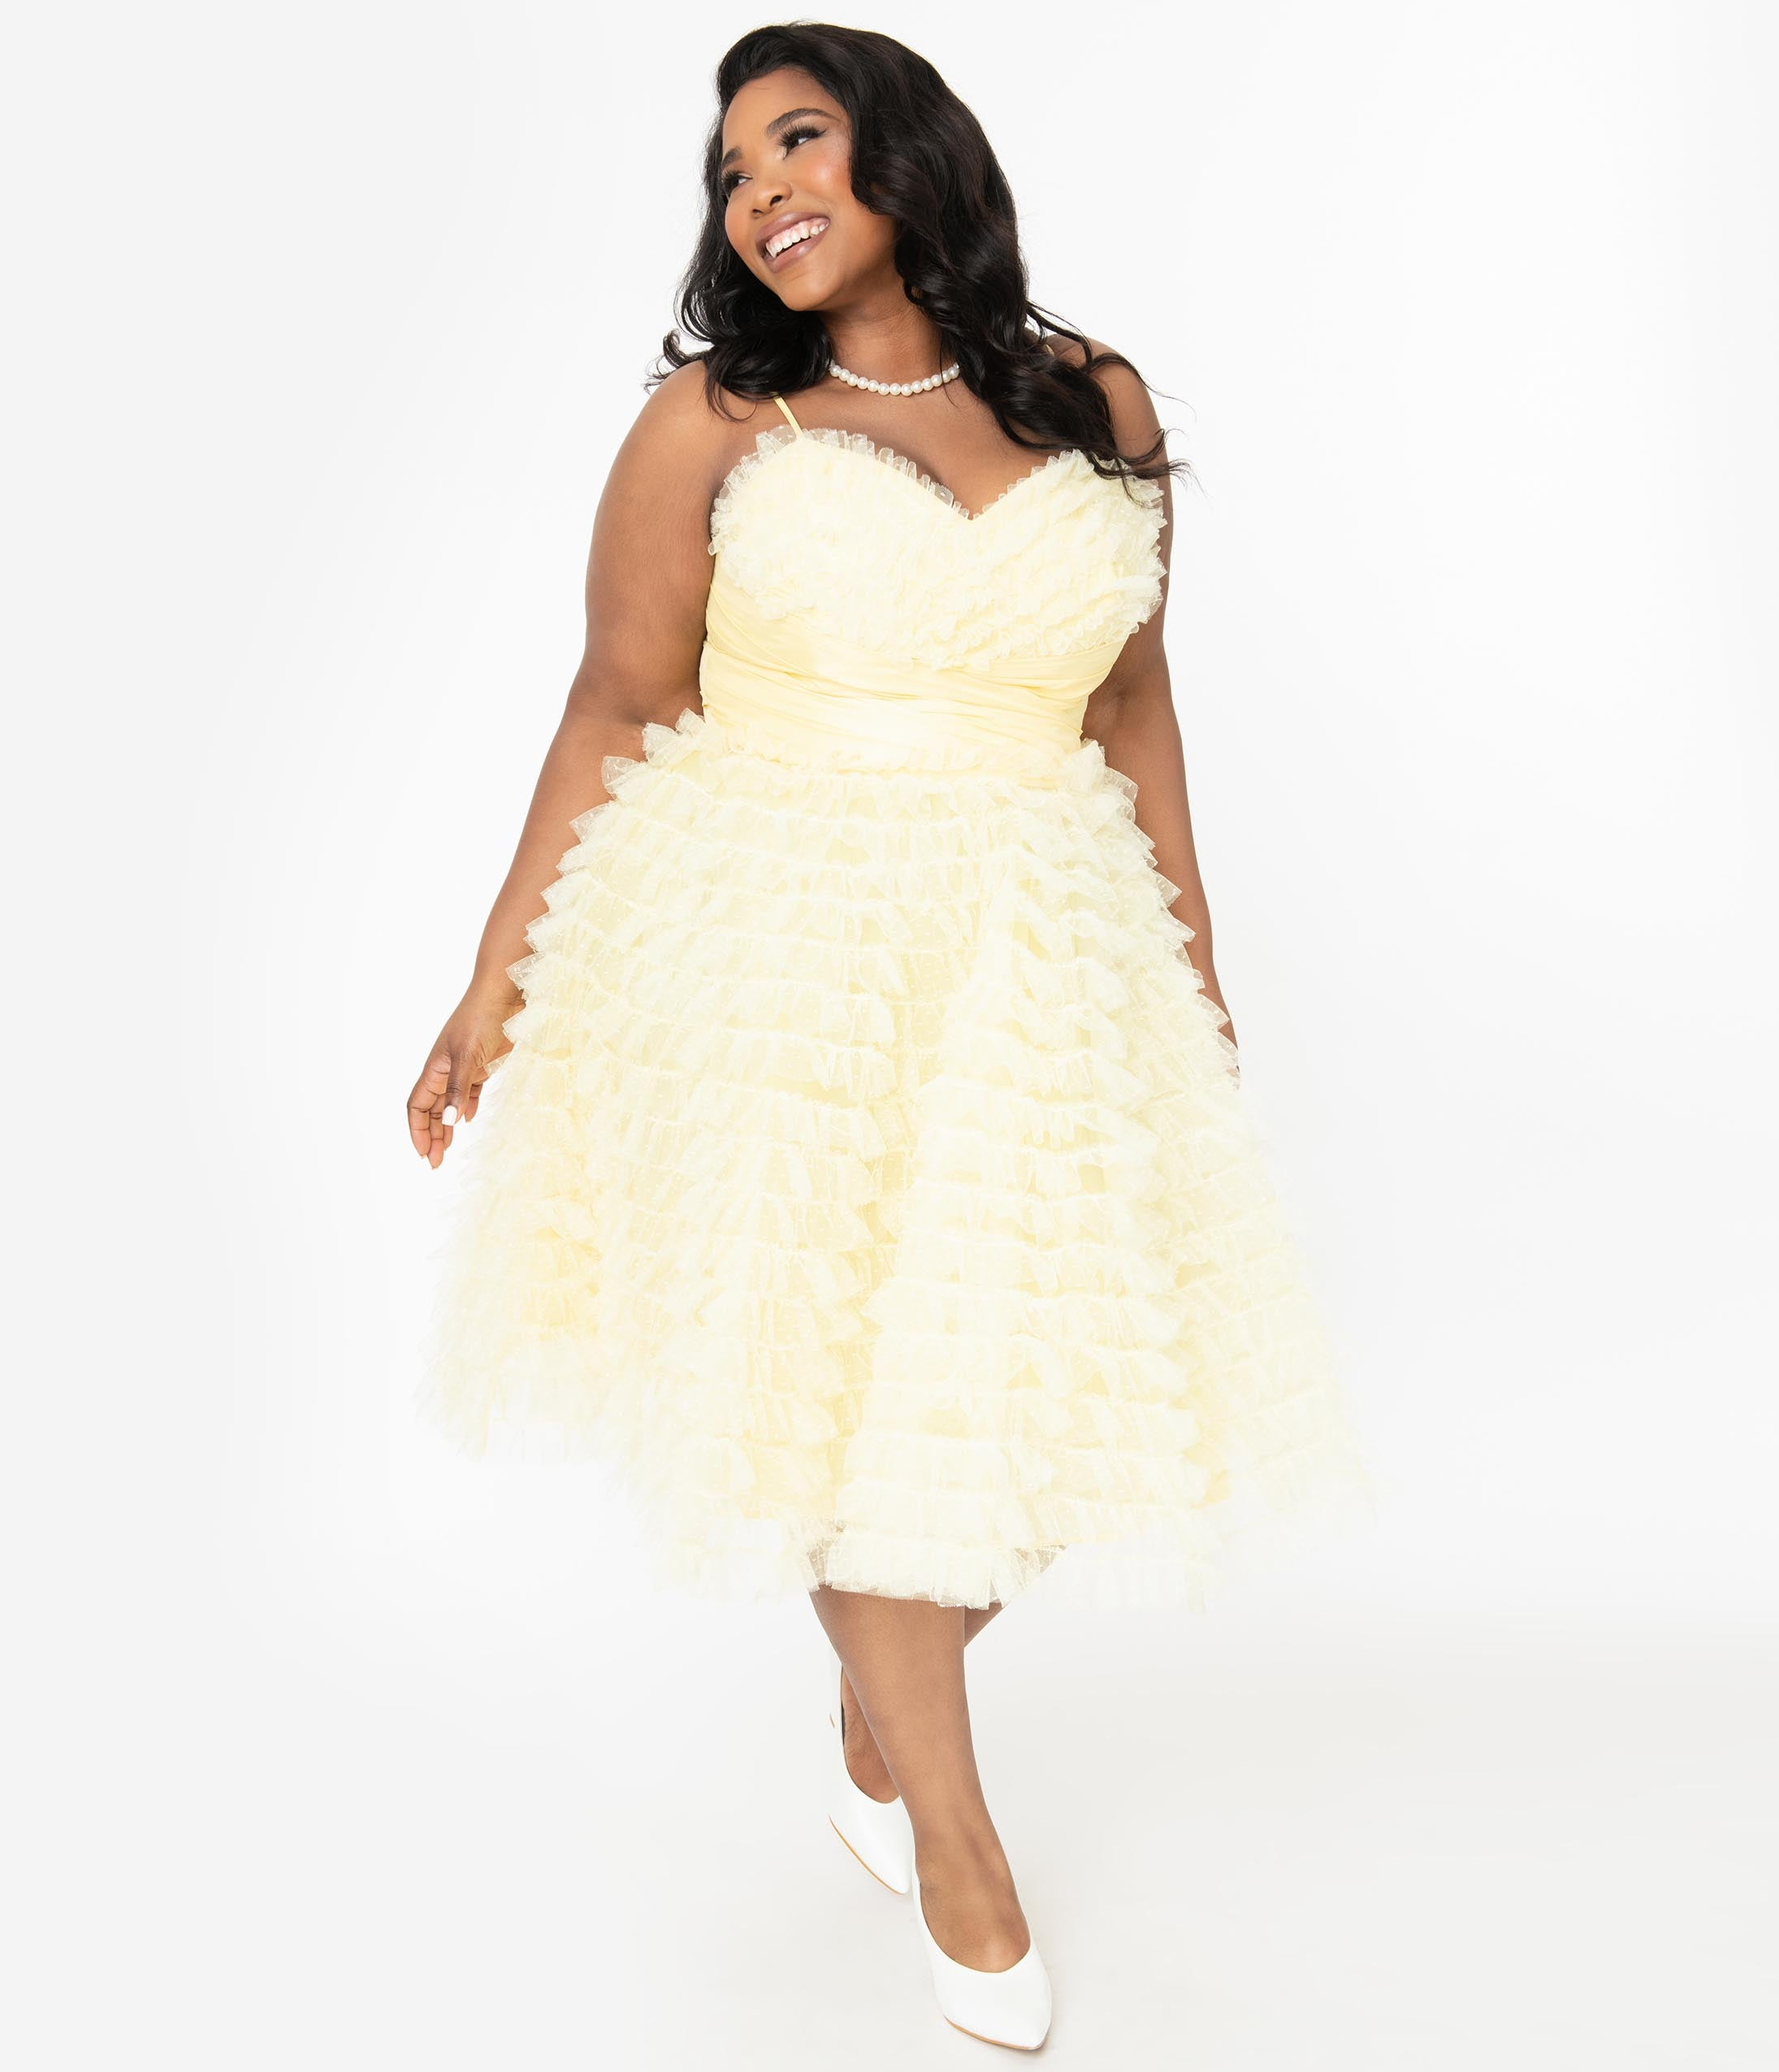 60s 70s Plus Size Dresses, Clothing, Costumes Unique Vintage Plus Size 1950S Yellow Ruffled Tulle Cupcake Swing Dress $110.00 AT vintagedancer.com